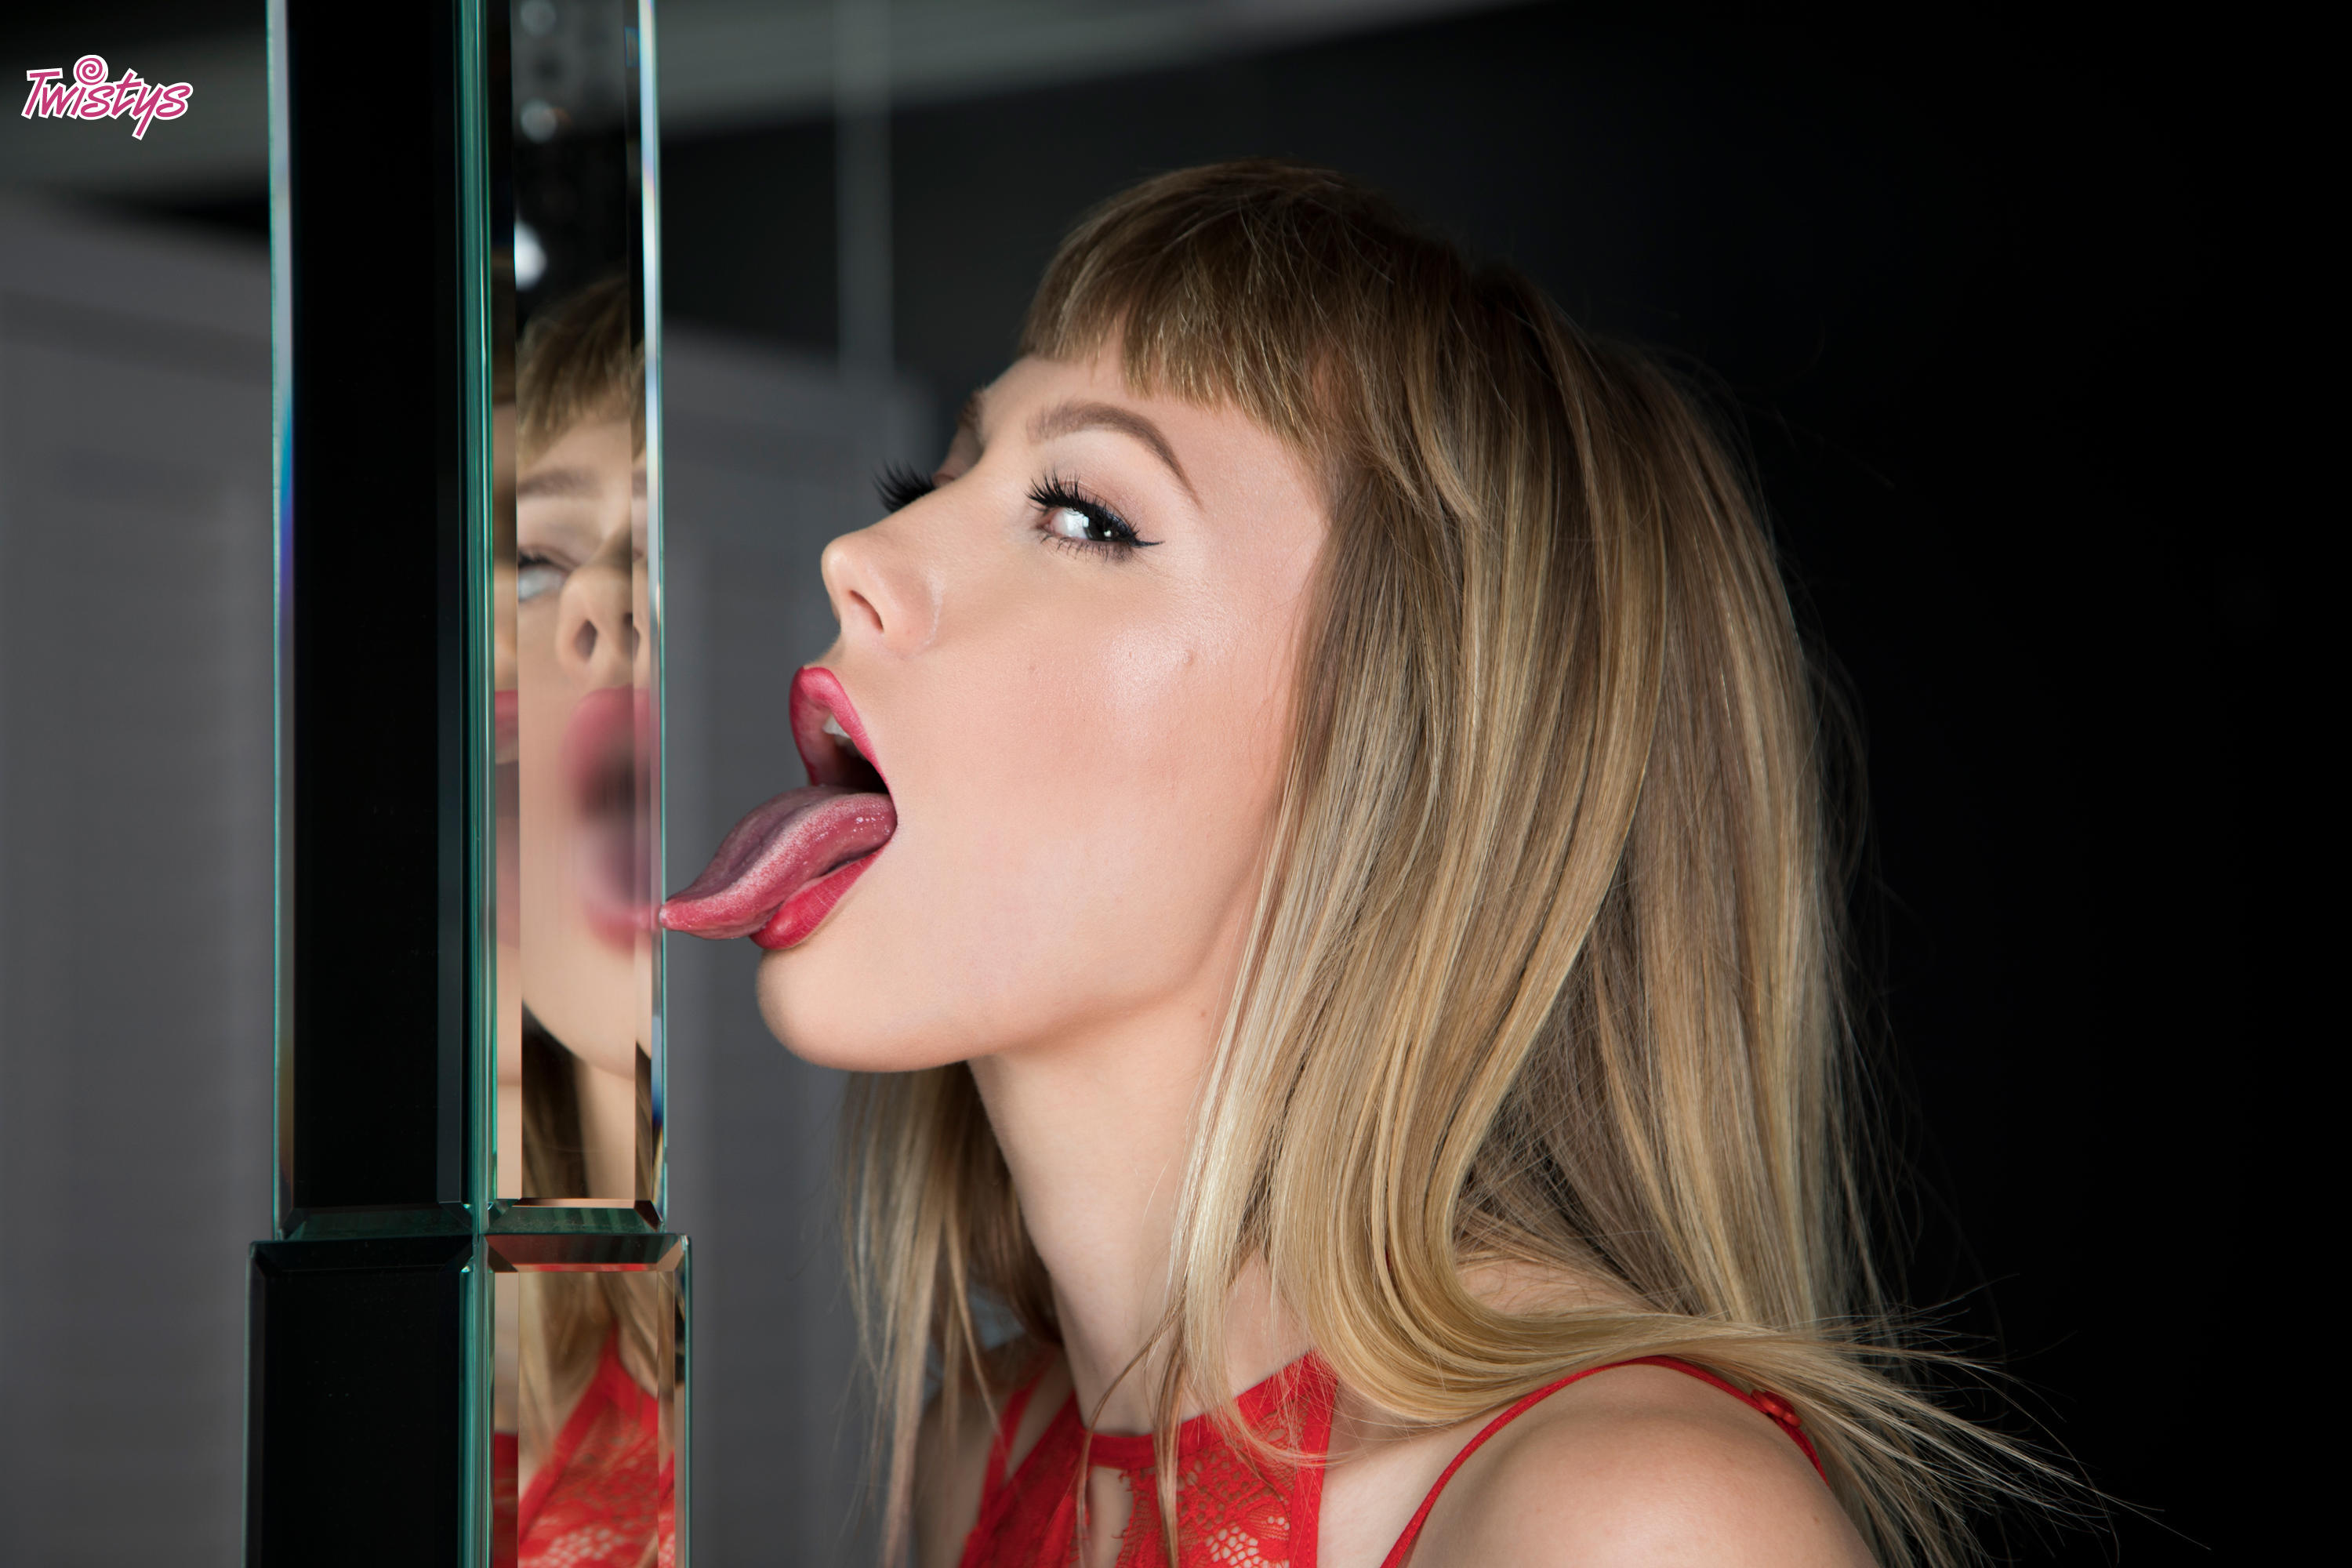 Twistys 'Woman in the Mirror' starring Ivy Wolfe (Photo 15)